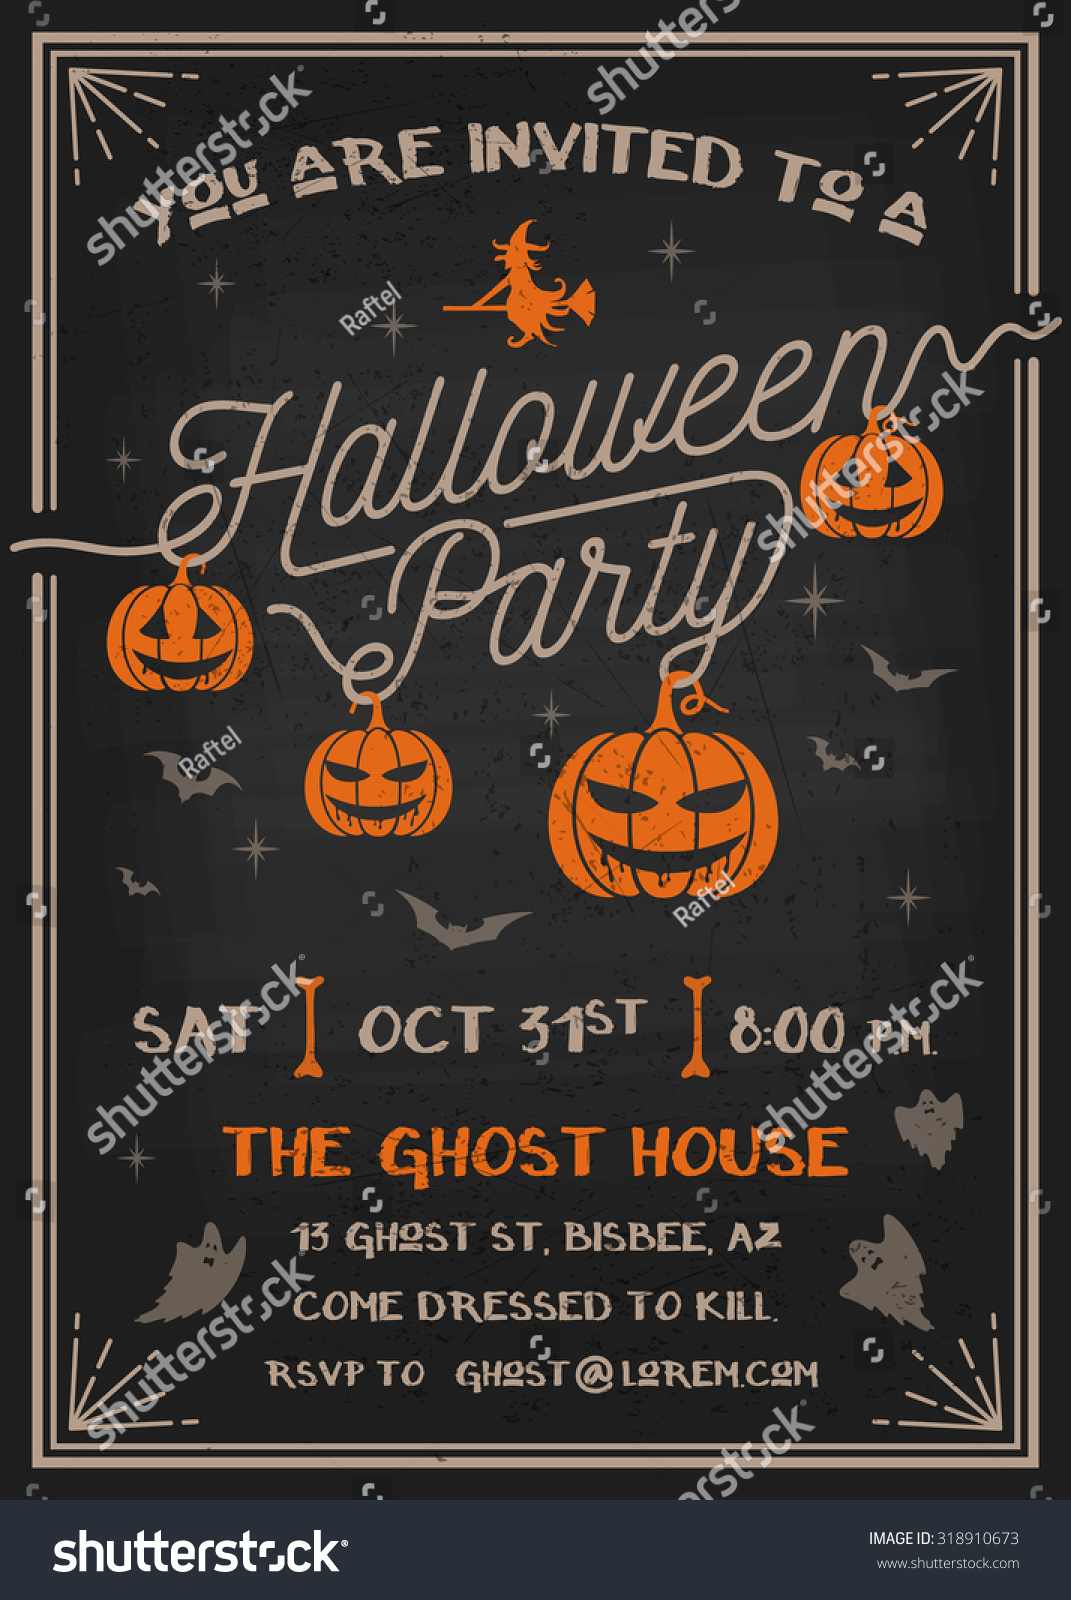 Typography Halloween Party Invitation Card Scary Stock Vector ...